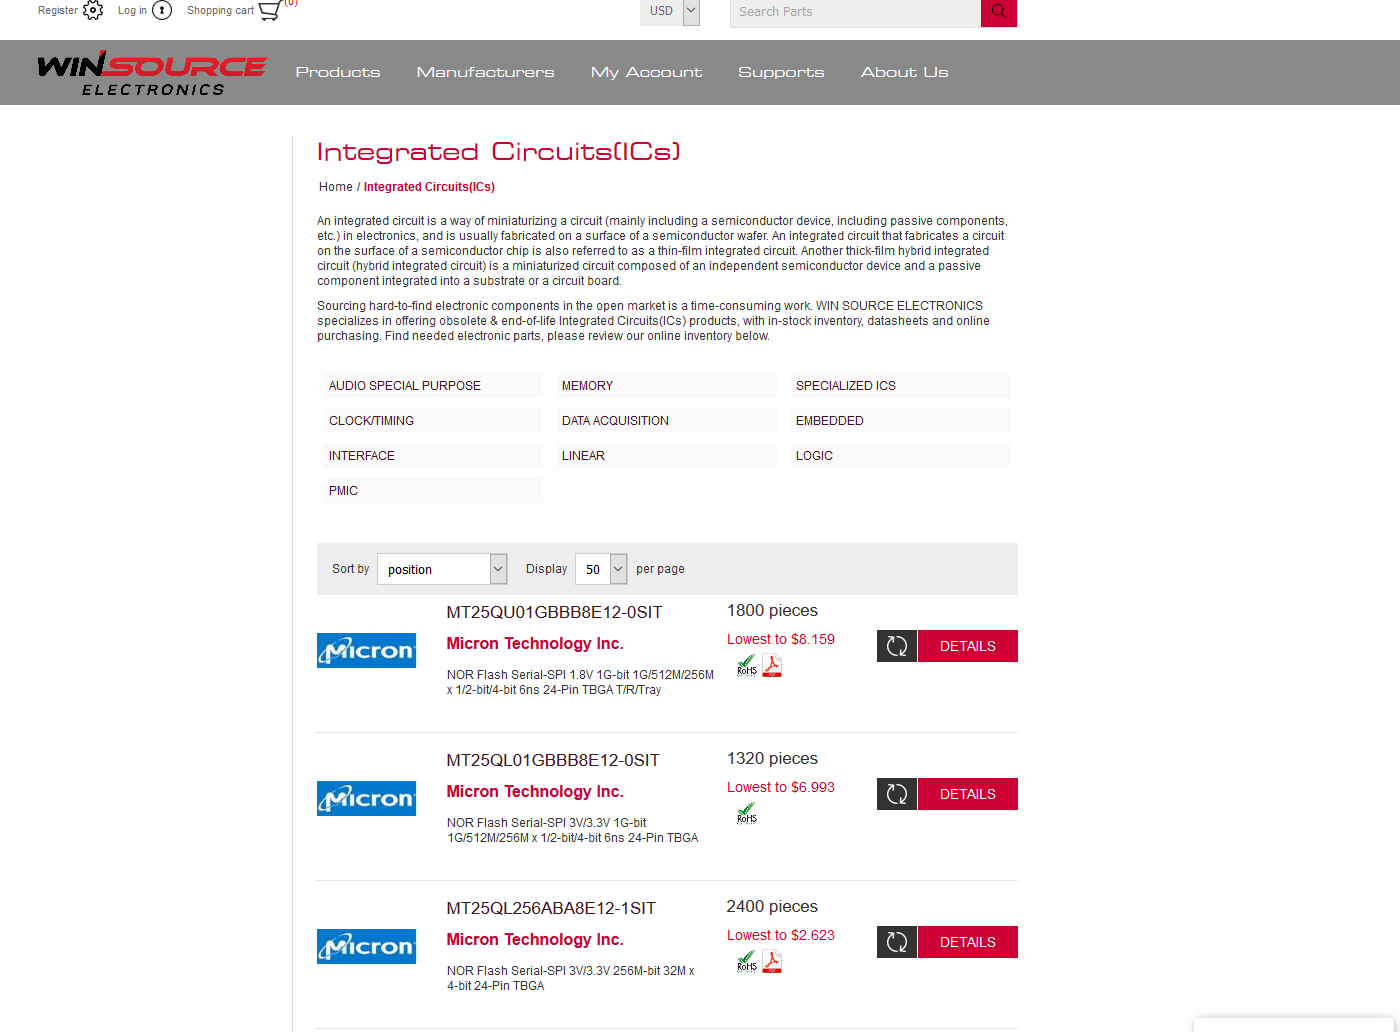 Search results on Integrated Circuits on Win-Source Electronics site